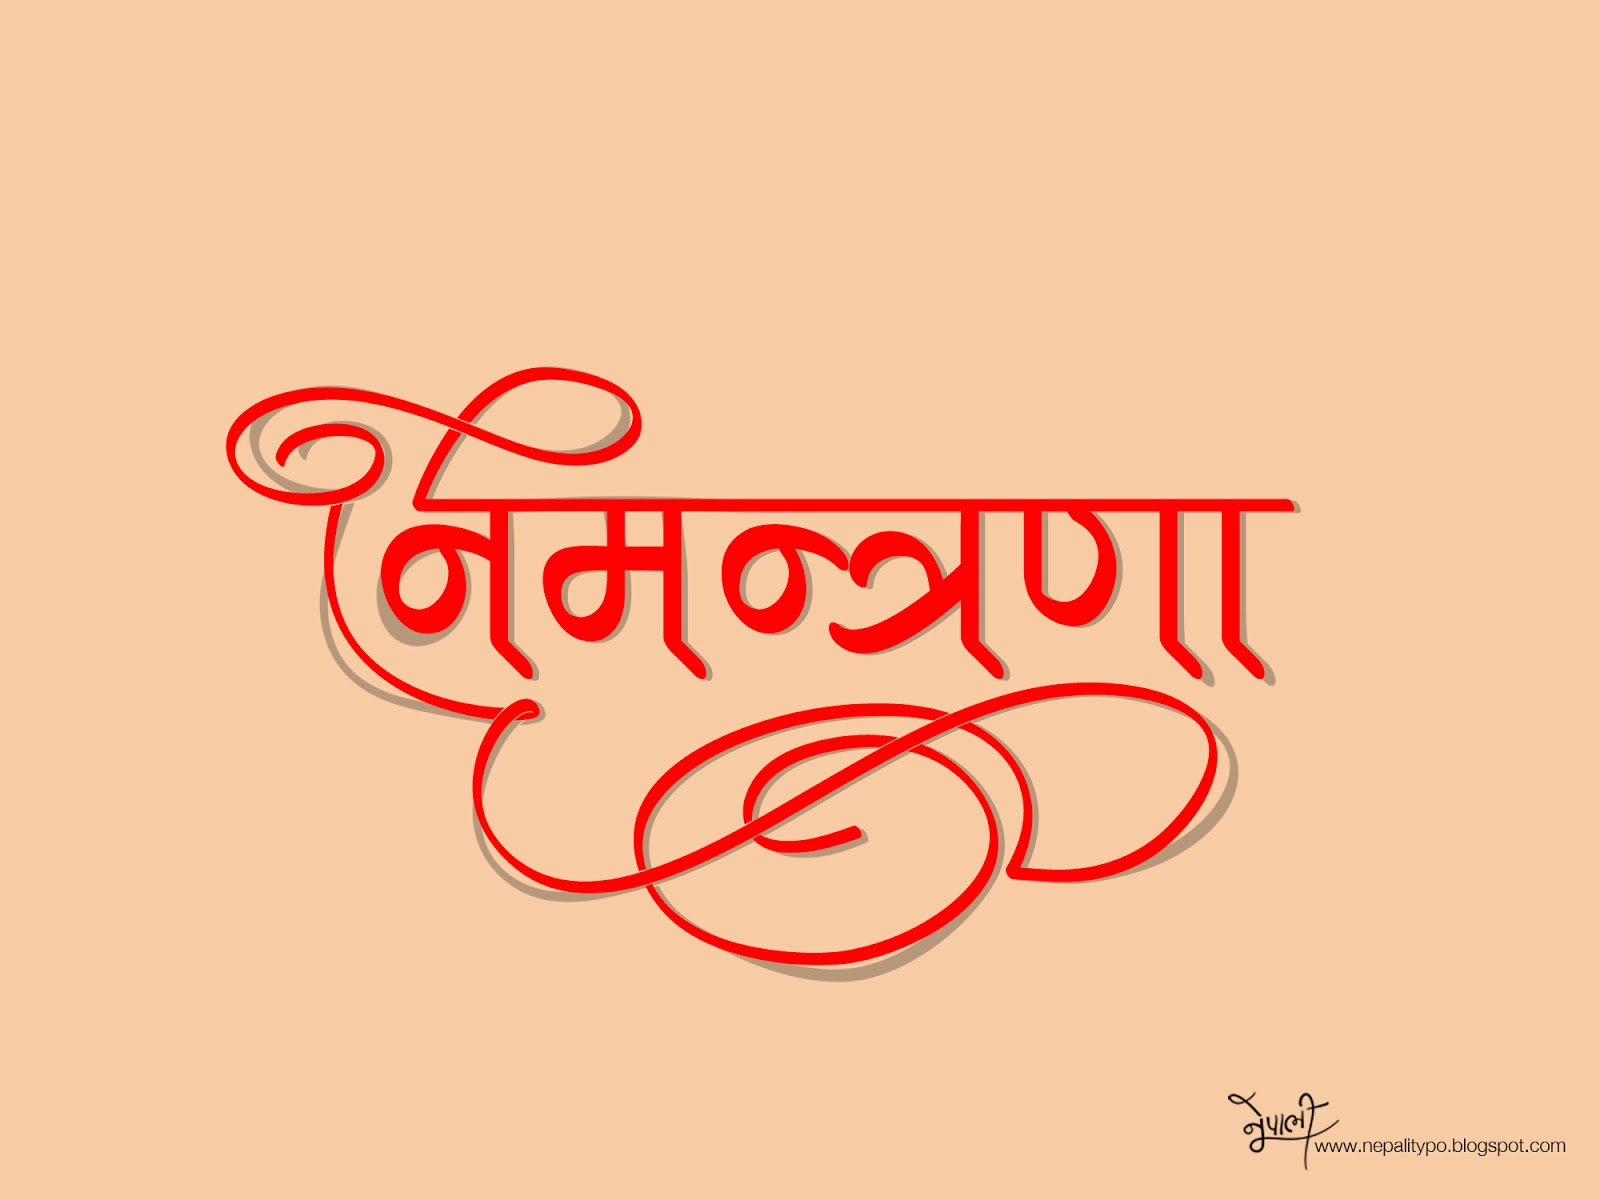 NepaliTypo: A Nepalese Typography and Calligraphy ...